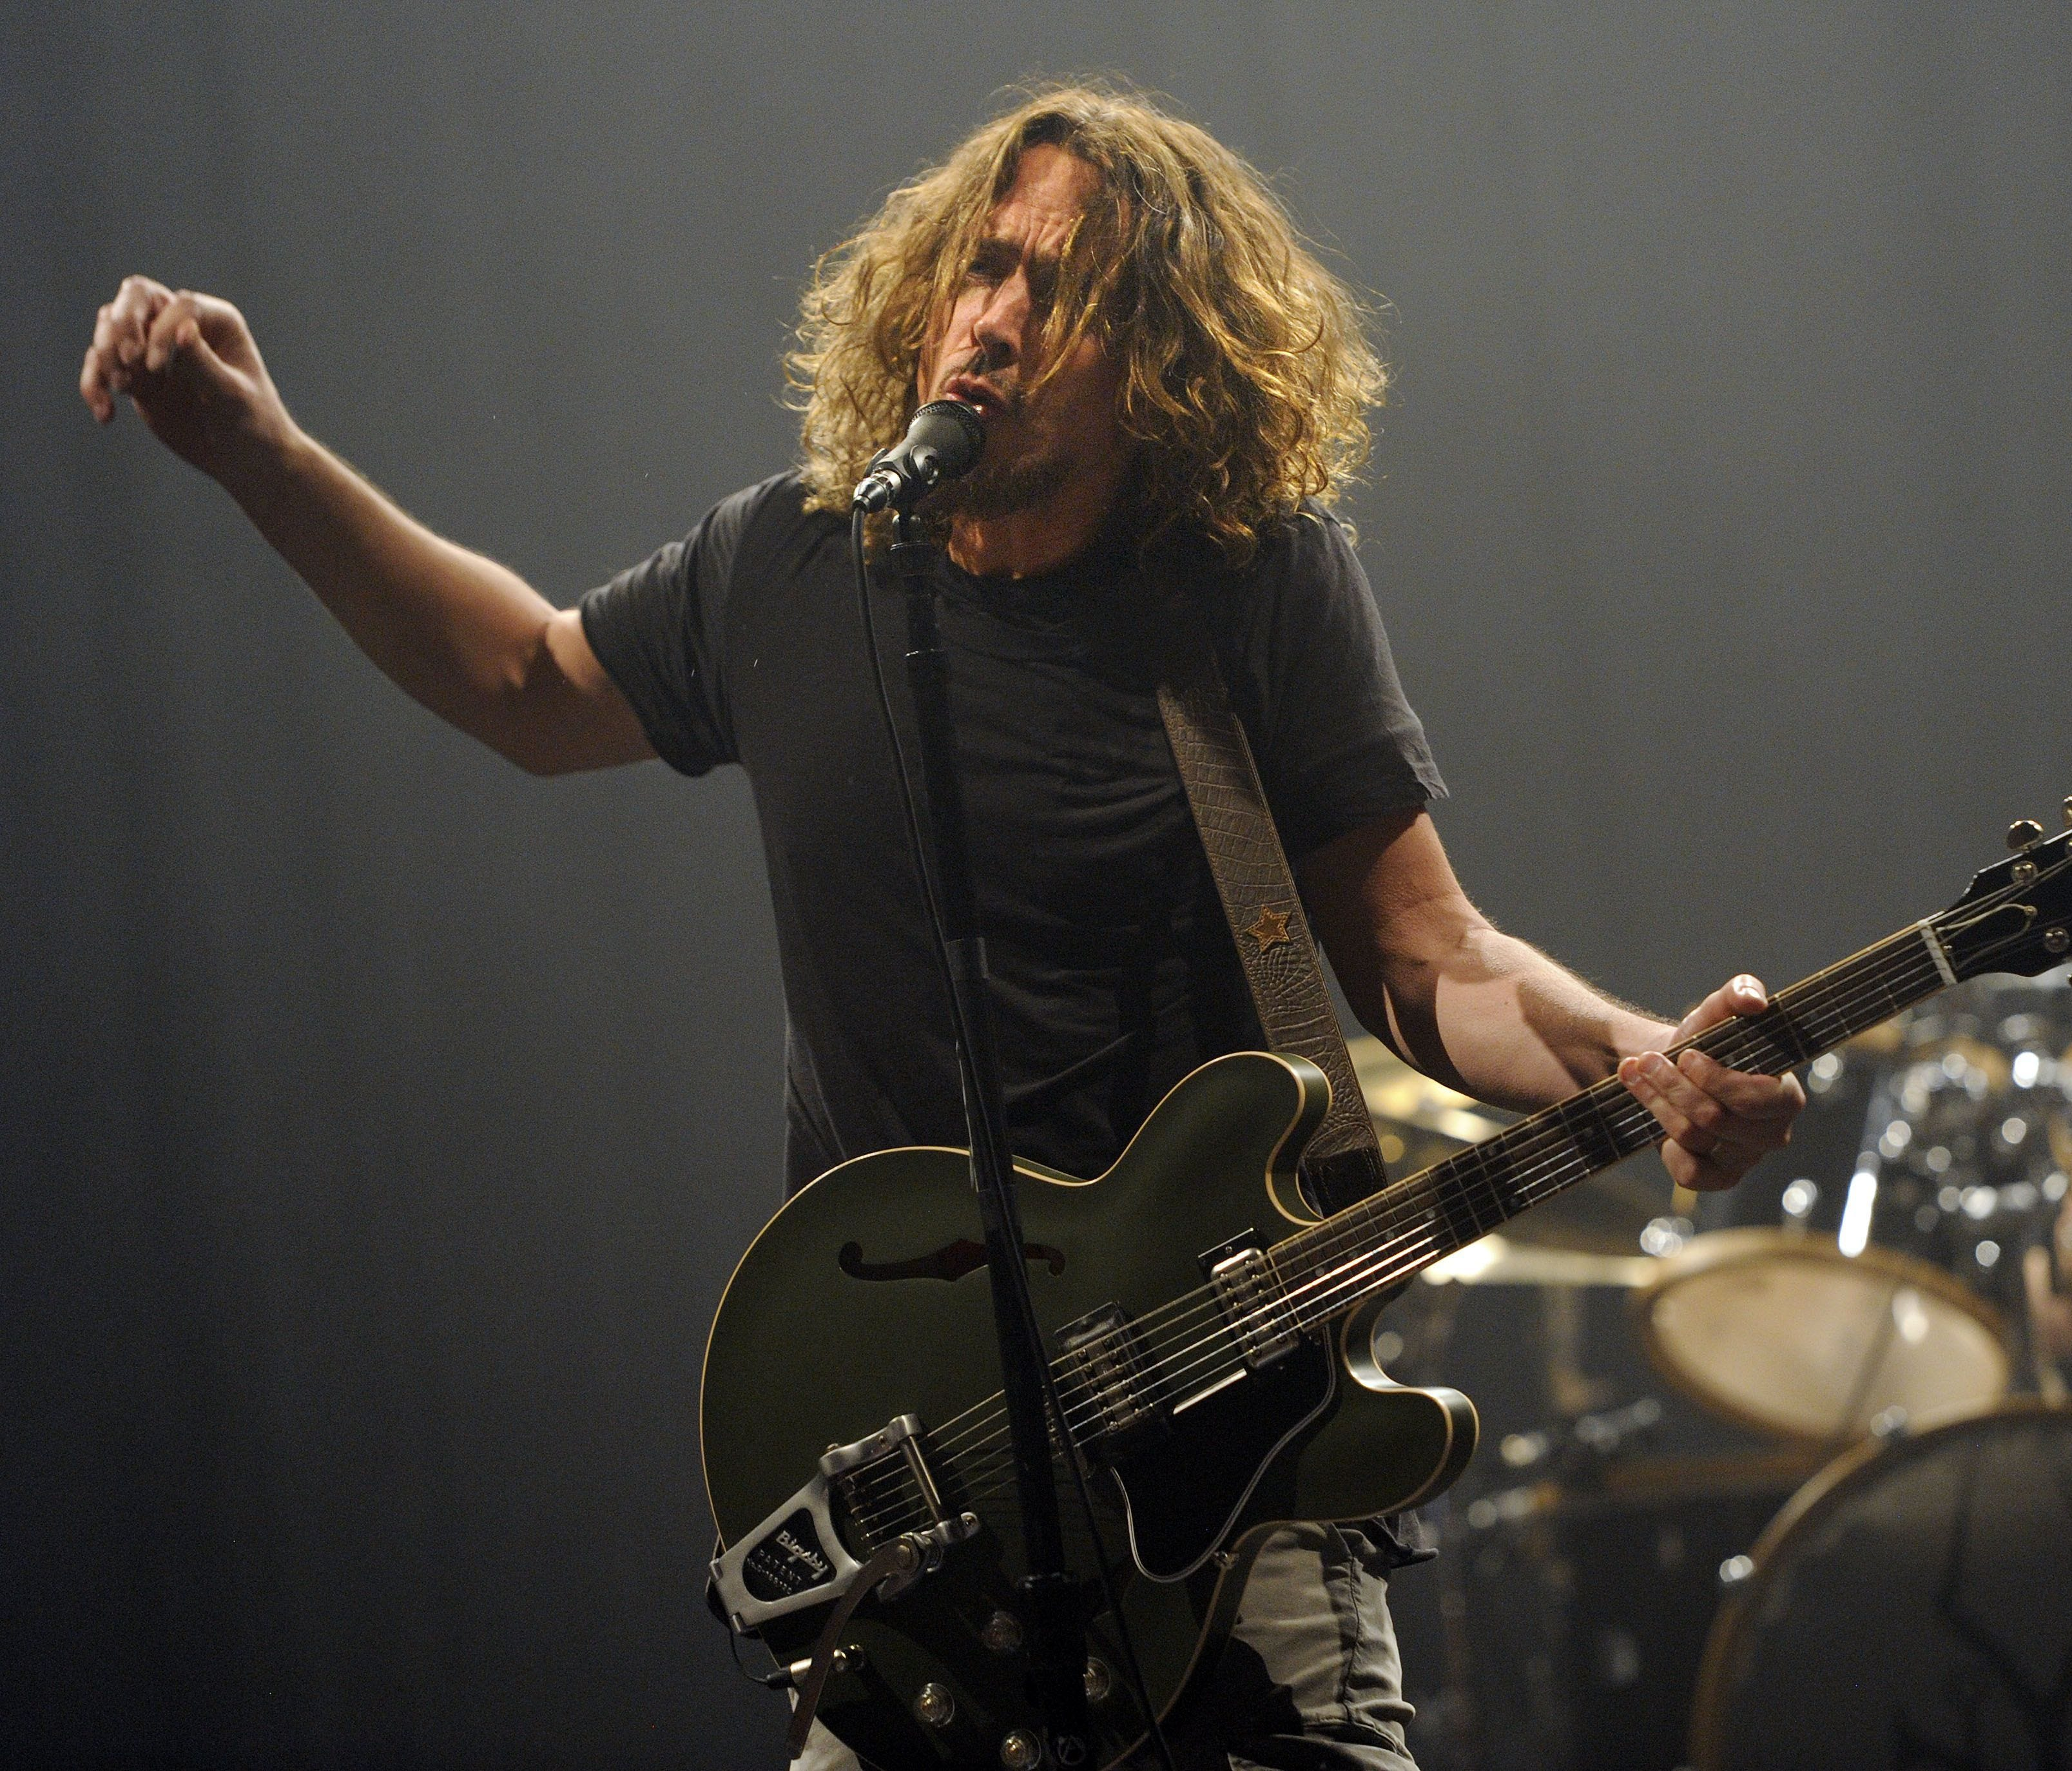 Cornell, seen here during a 2013 concert with Soundgarden, appeared out of sorts during his final show in Detroit Wednesday.